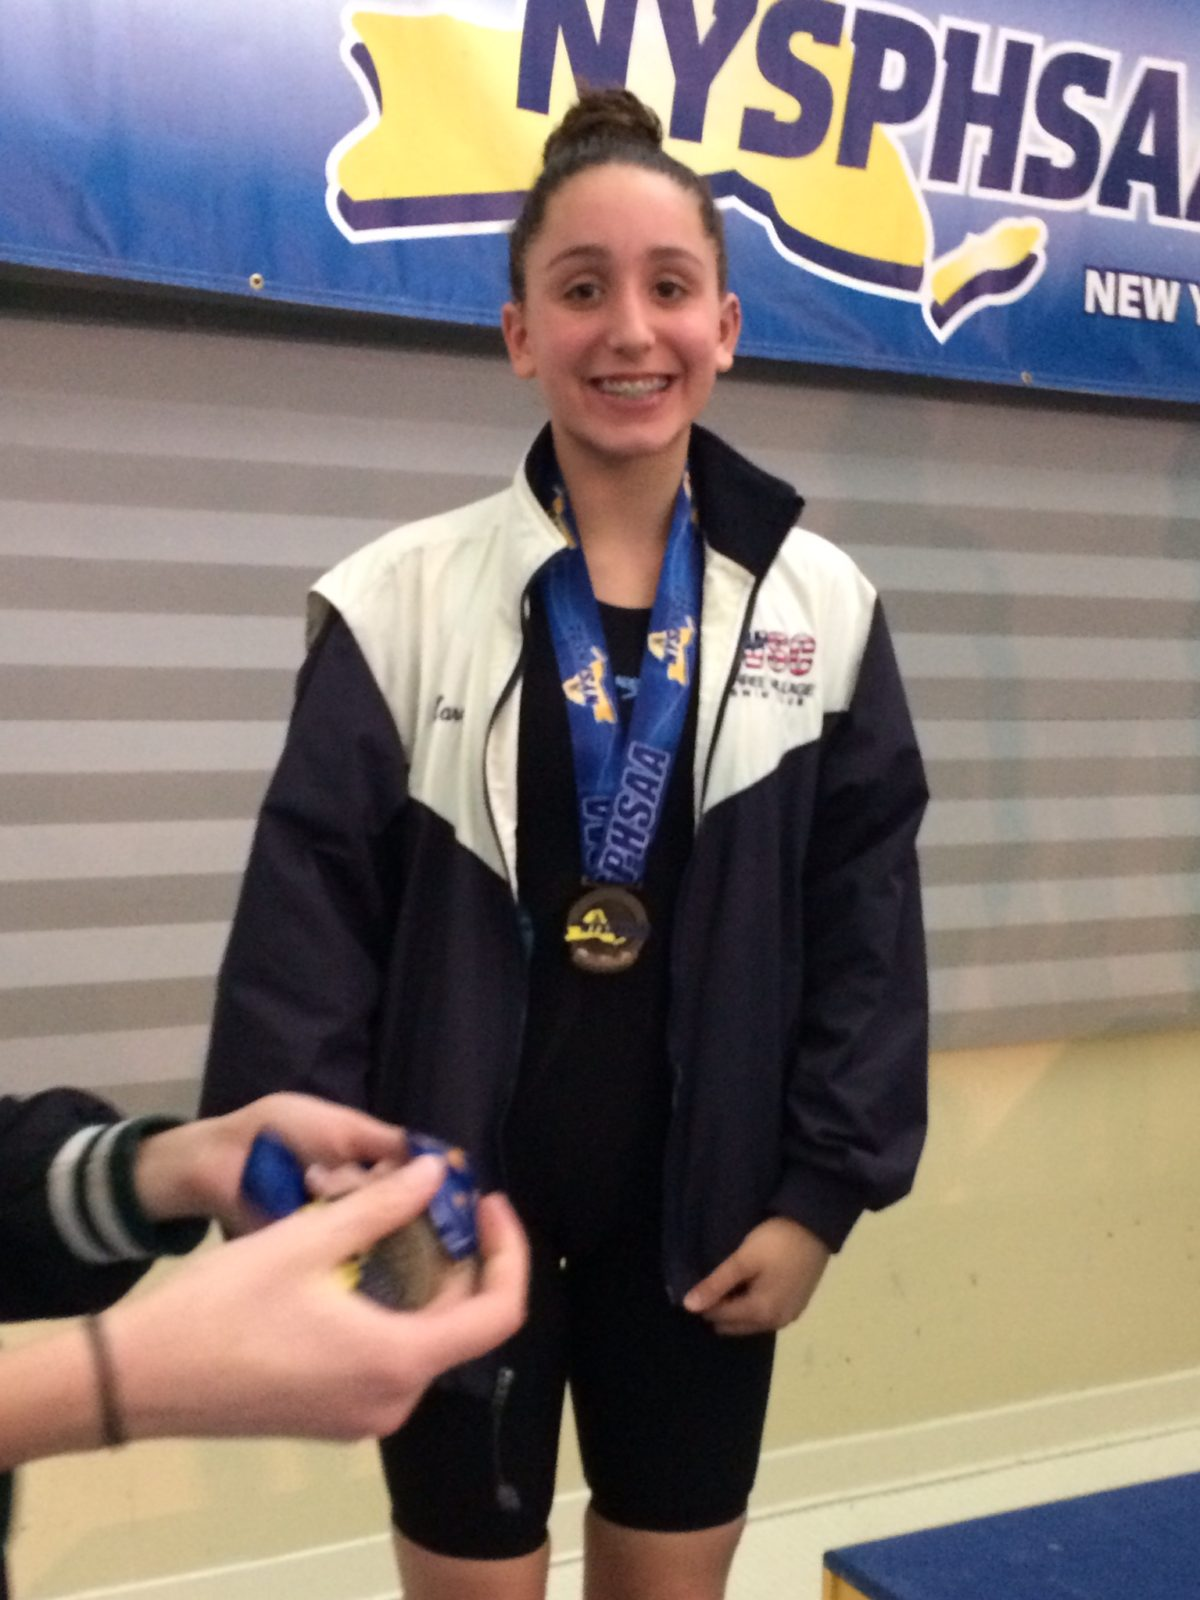 Miller Place Student Competes at NYSPHSAA Swim Championship